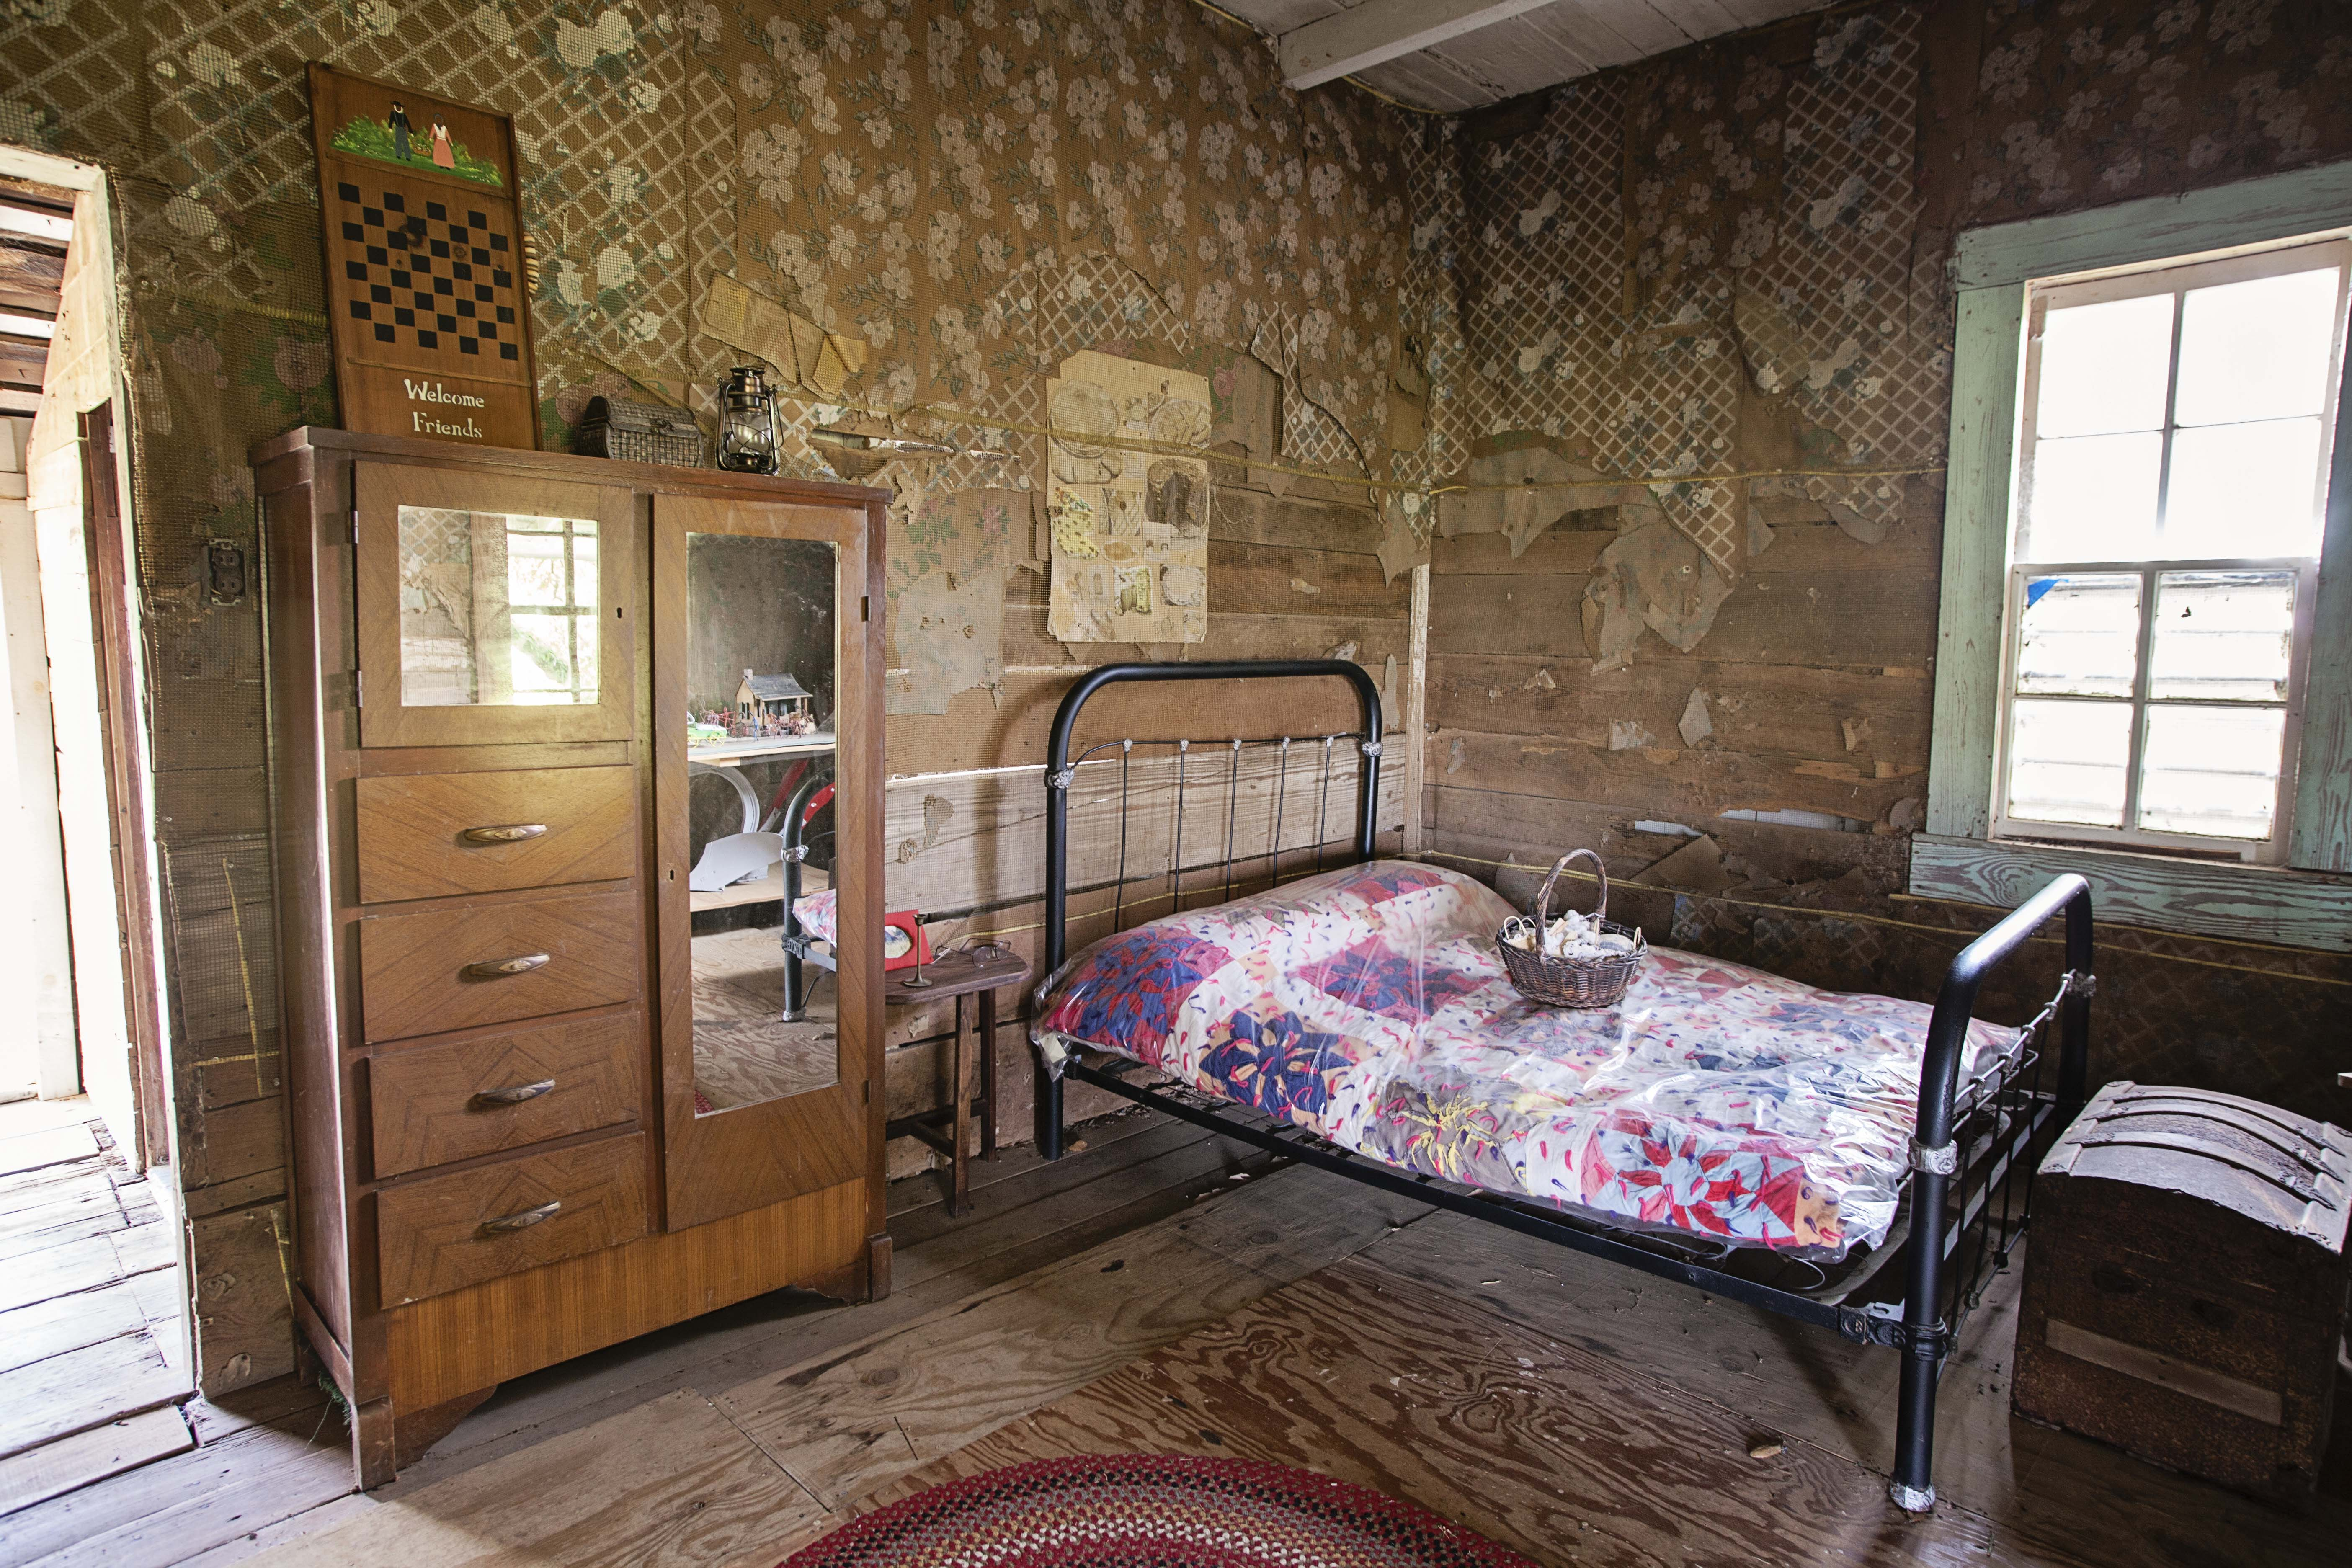 Across from the fireplace, in the cabin's main room, is a small bed with a brightly colored quilt. Beside the bed stands a wardrobe and a large truck sits at the foot of the bed.